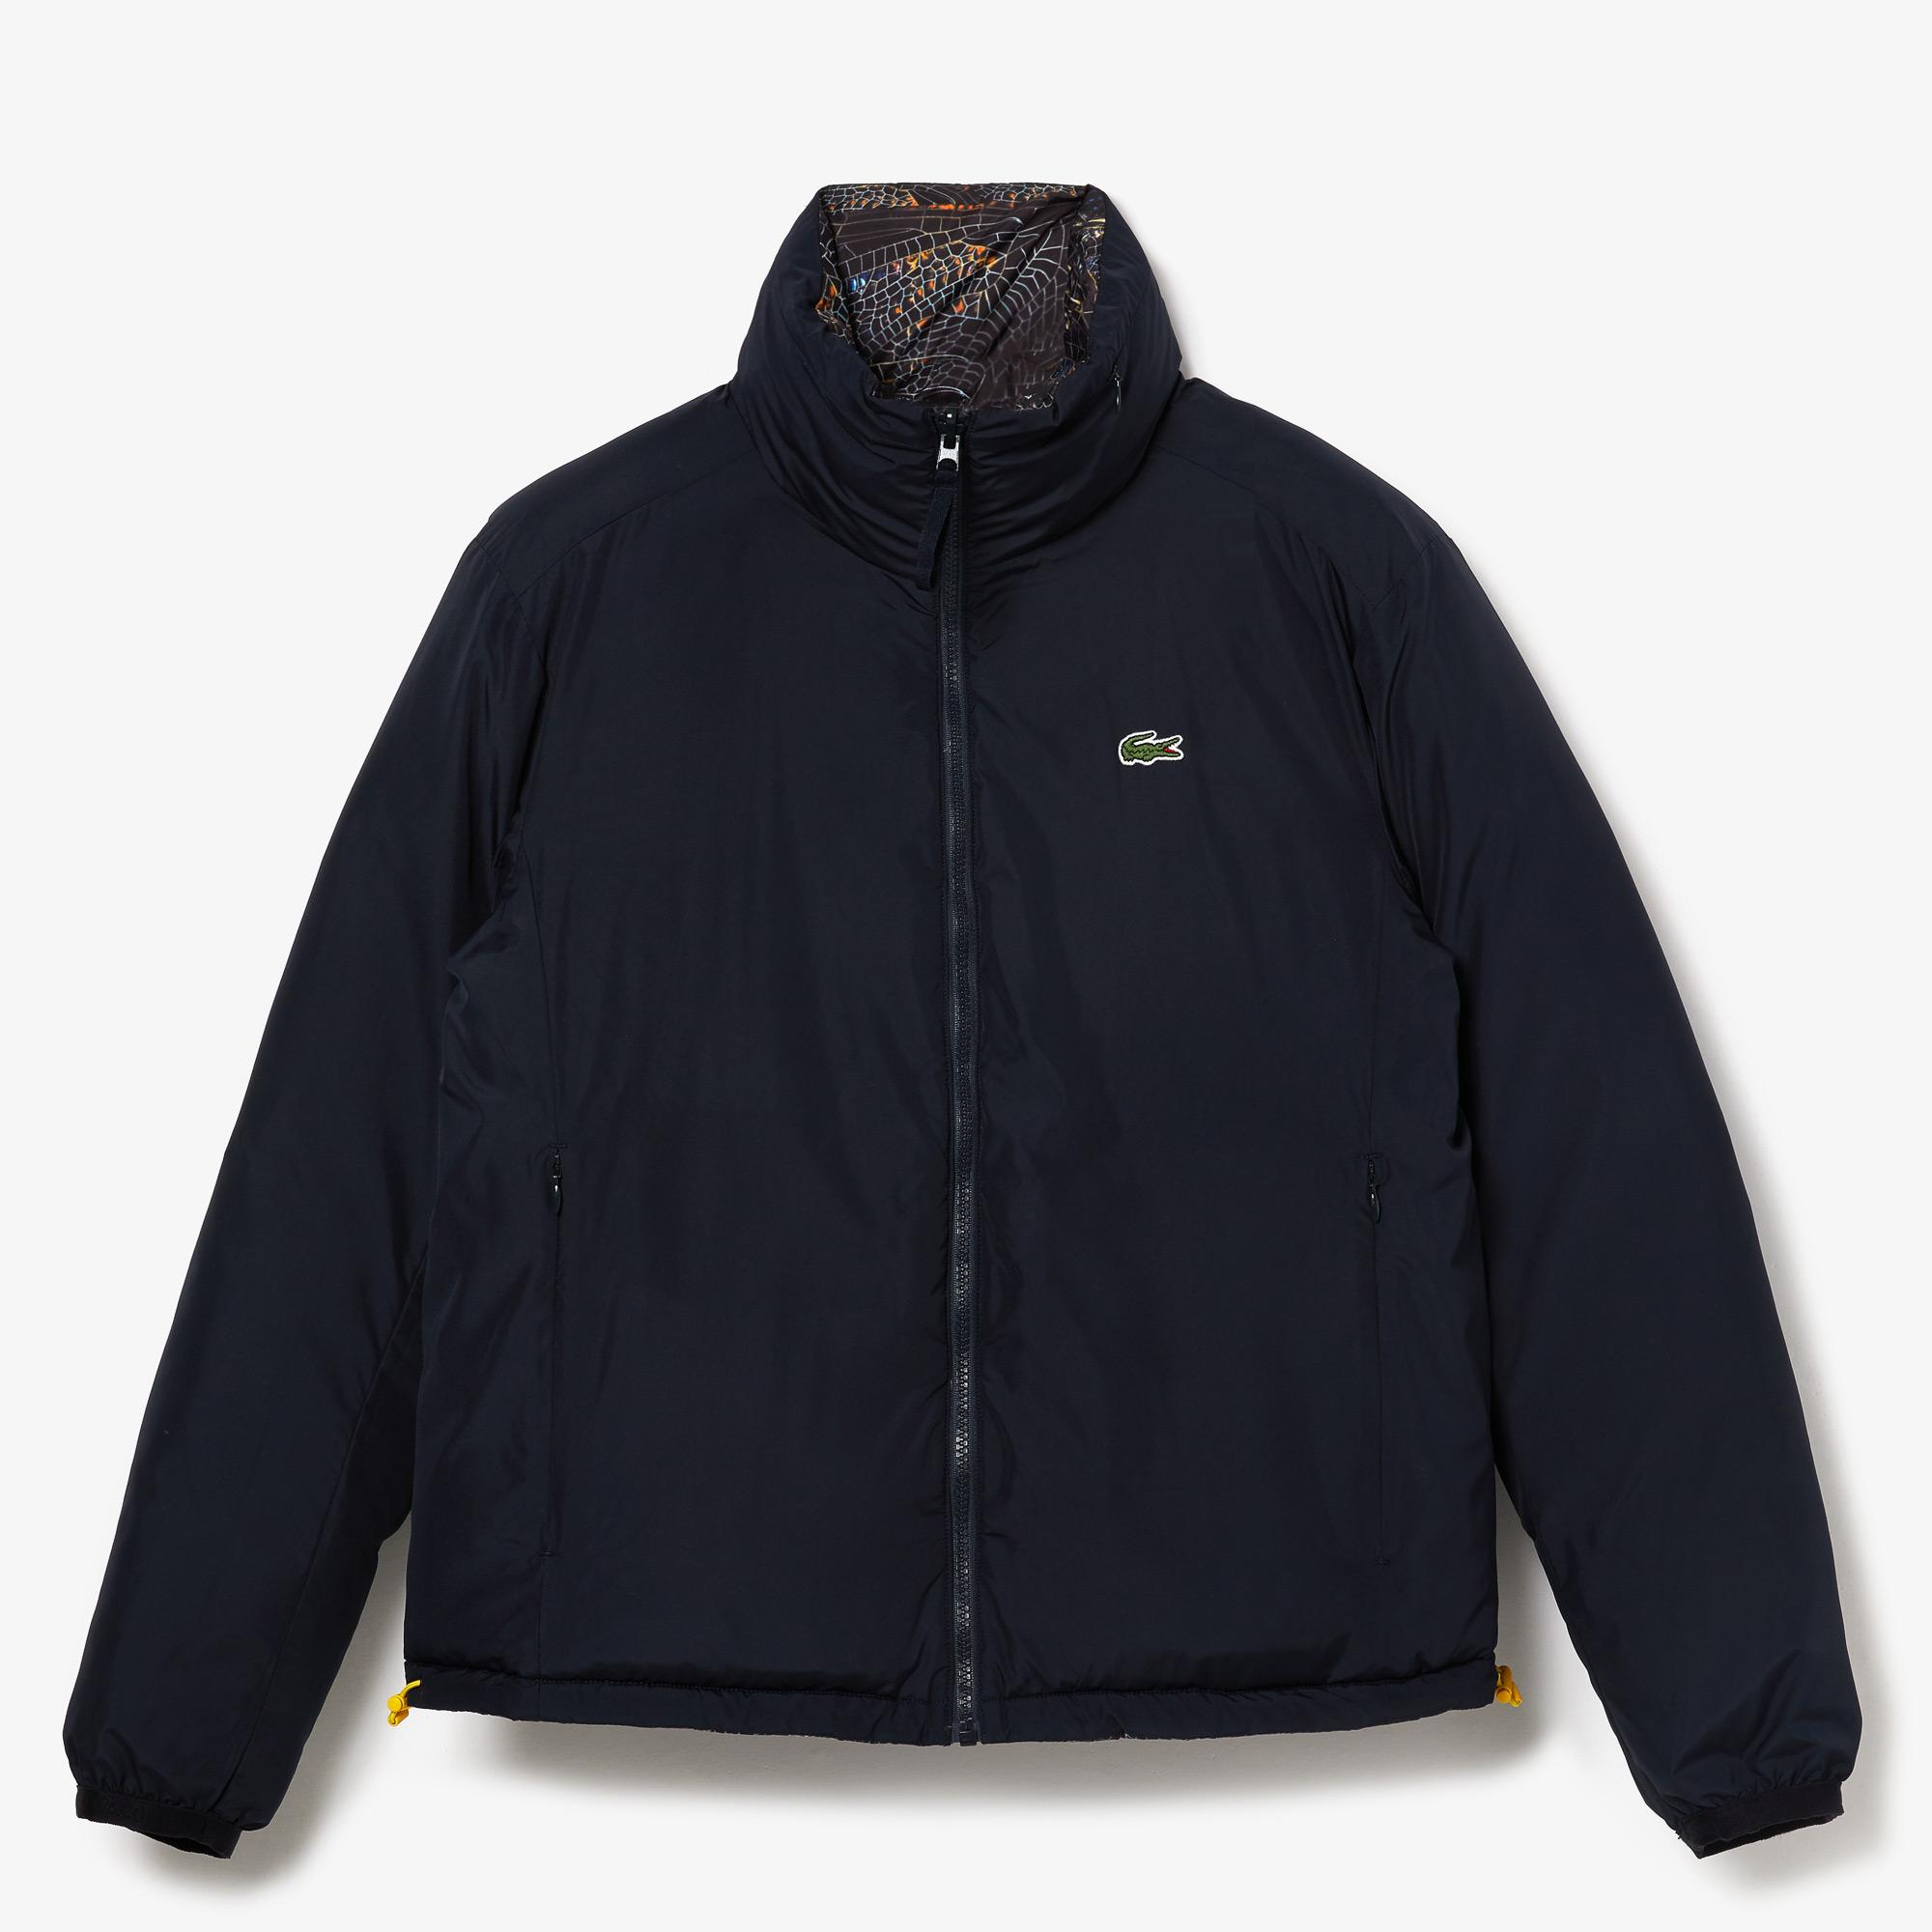 Lacoste Women's x National Geographic Print Quilted Jacket